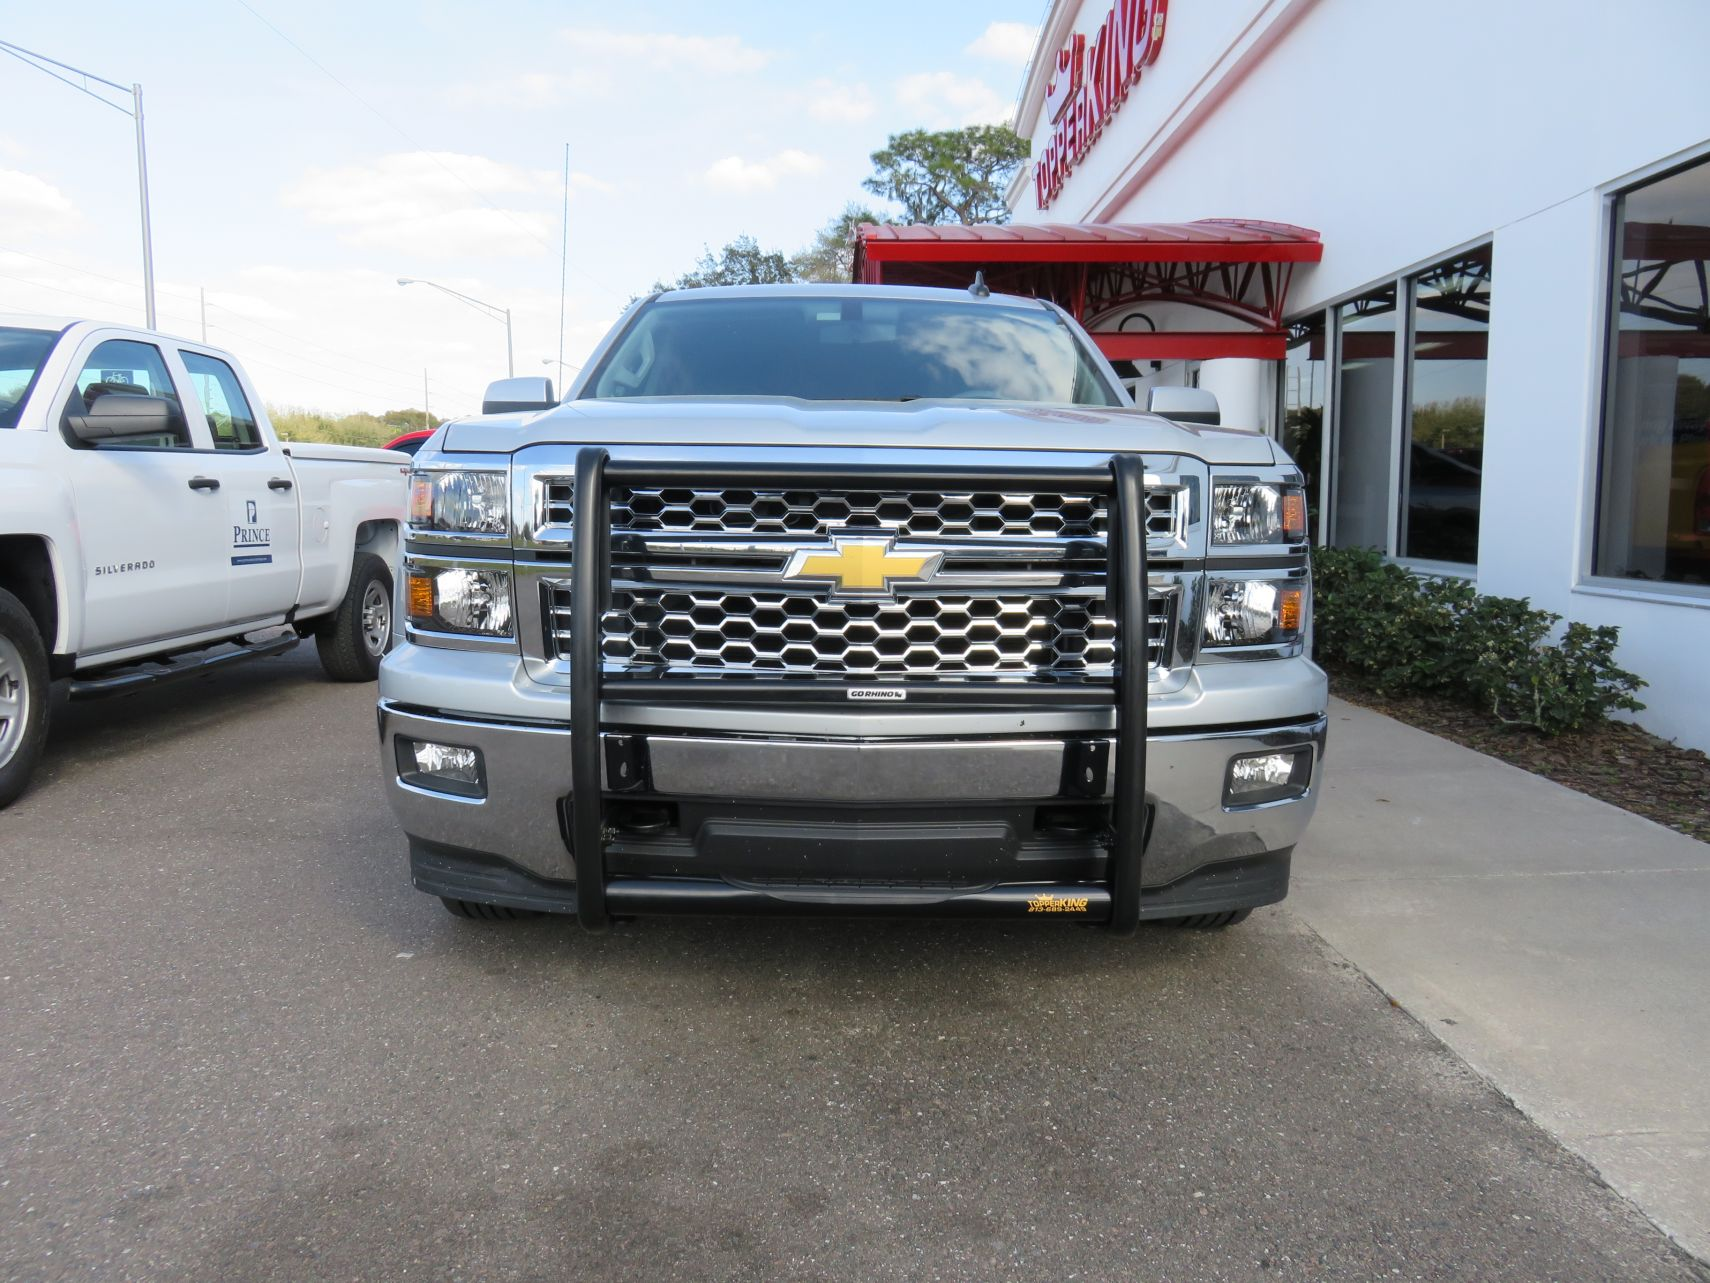 Running Boards For Chevy Silverado 2014 >> Bull Bars - TopperKING : TopperKING | Providing all of Tampa Bay with quality truck accessories